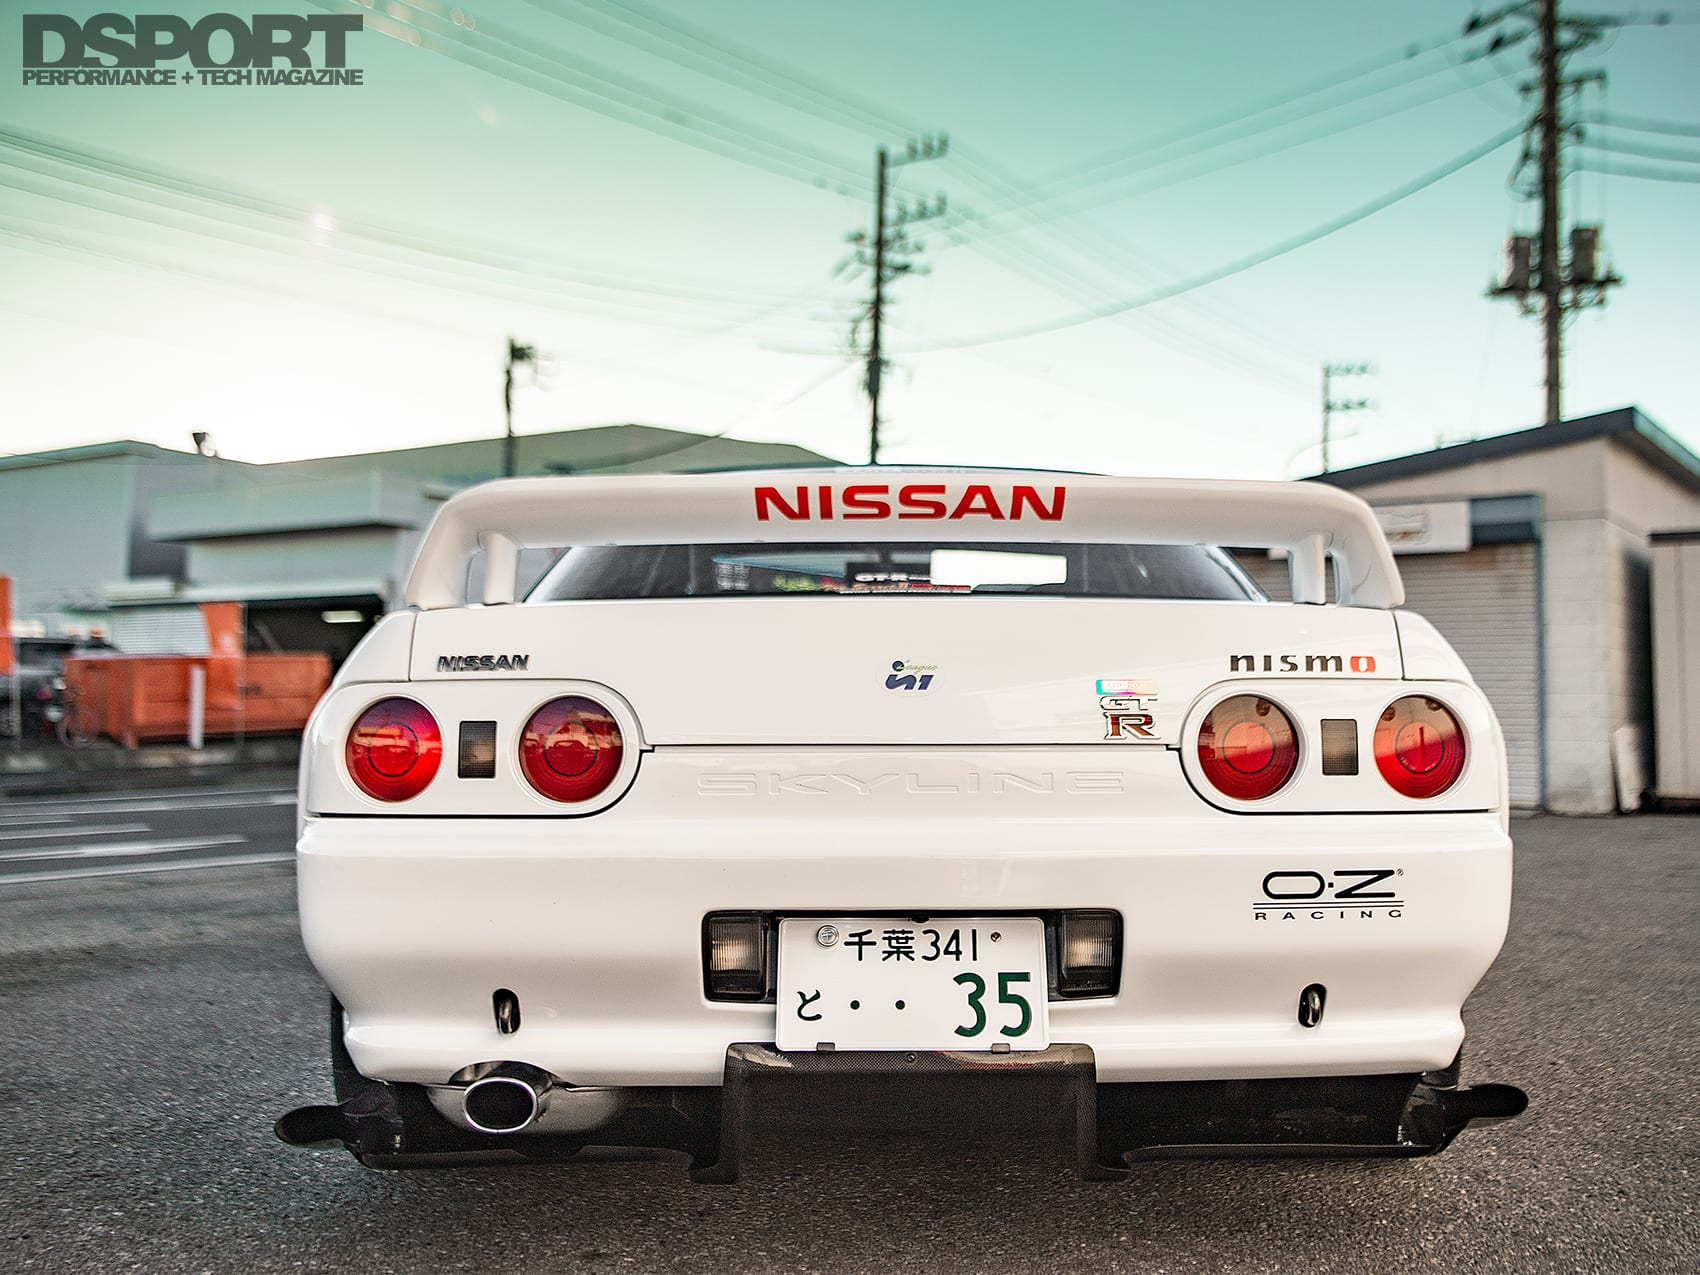 Top Secret's R35-Powered R32 GT-R - Page 2 of 2 - DSPORT